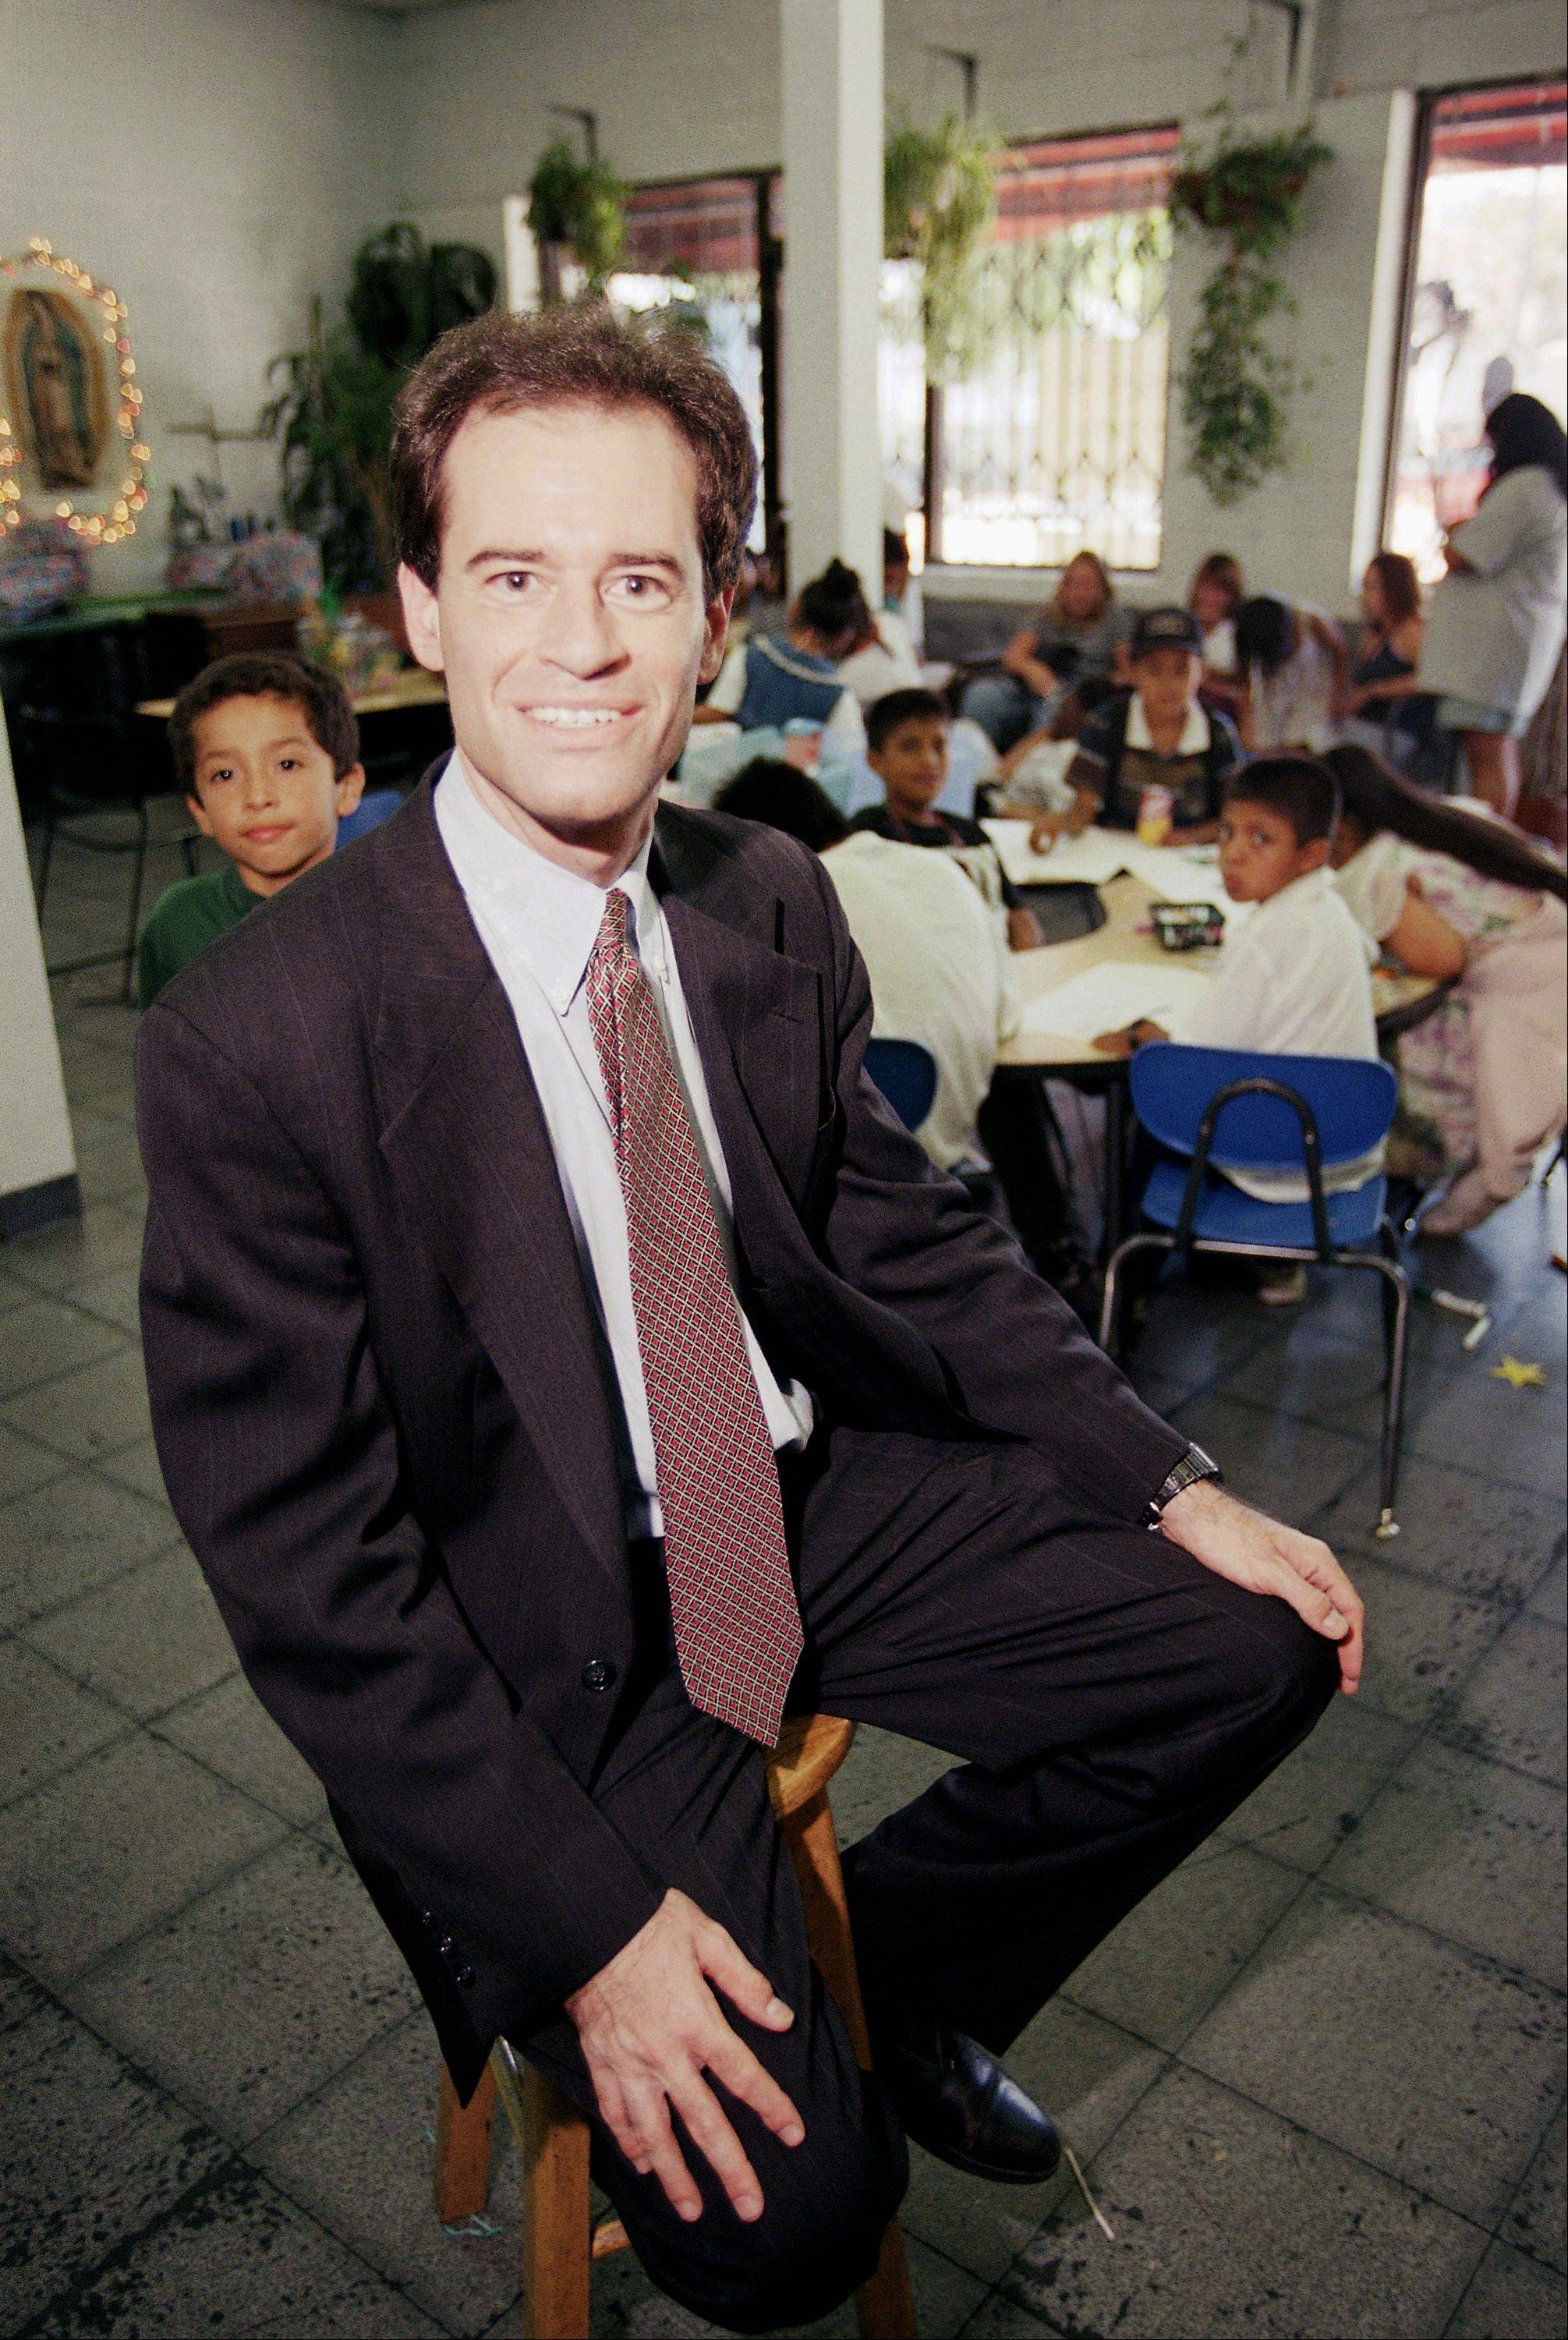 Ron Unz poses inside the Las Families Del Pueblo child care center in Los Angeles. Unz, a Silicon Valley multimillionaire and registered Republican who once ran for governor and, briefly, U.S. Senate, wants state voters to endorse the wage jump that he predicts would nourish the economy.